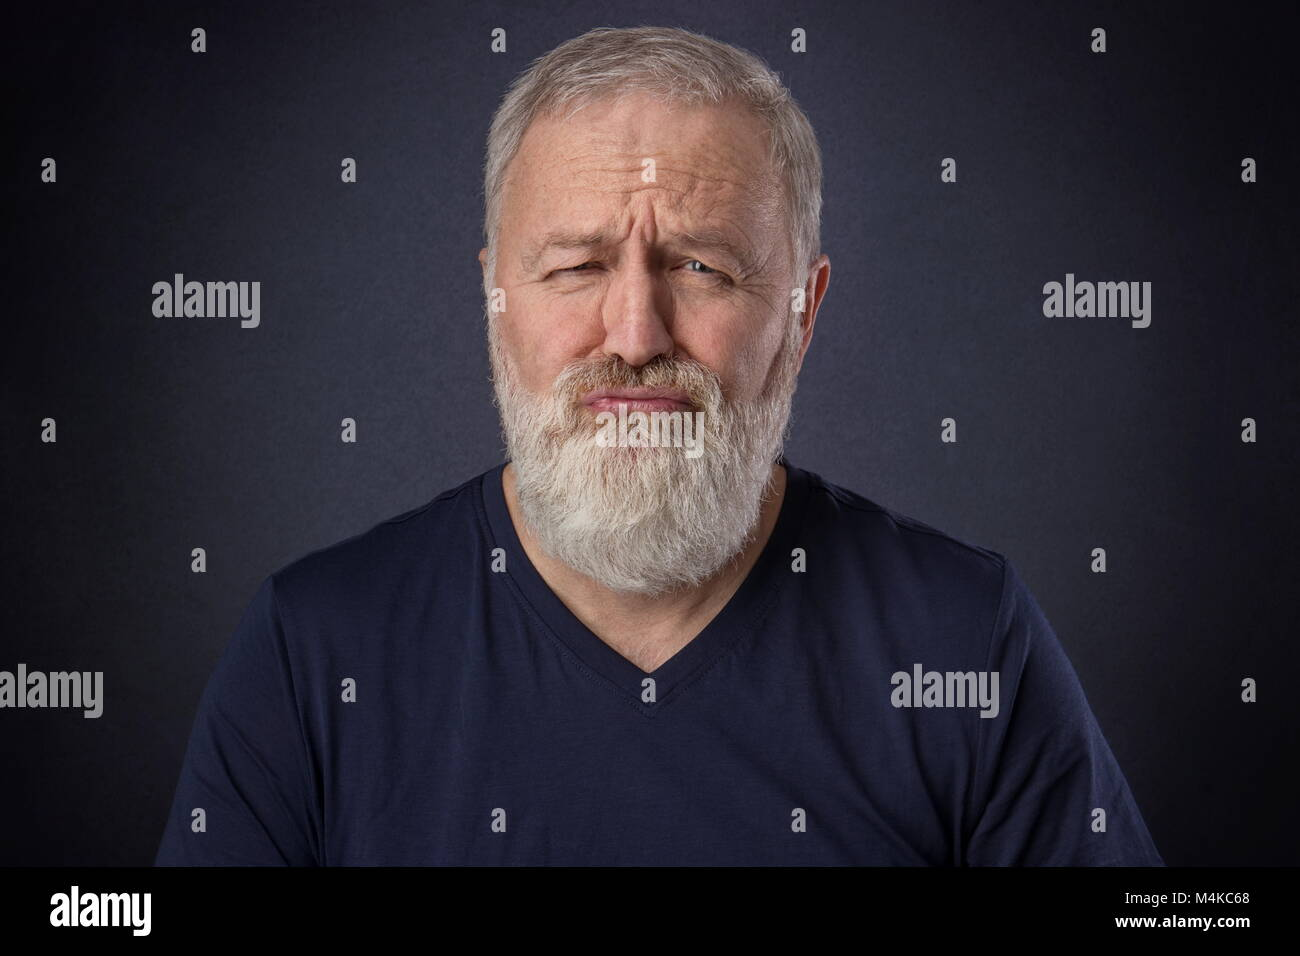 A 60 year old man with gray beard posing spoiled grimace in the studio - Stock Image